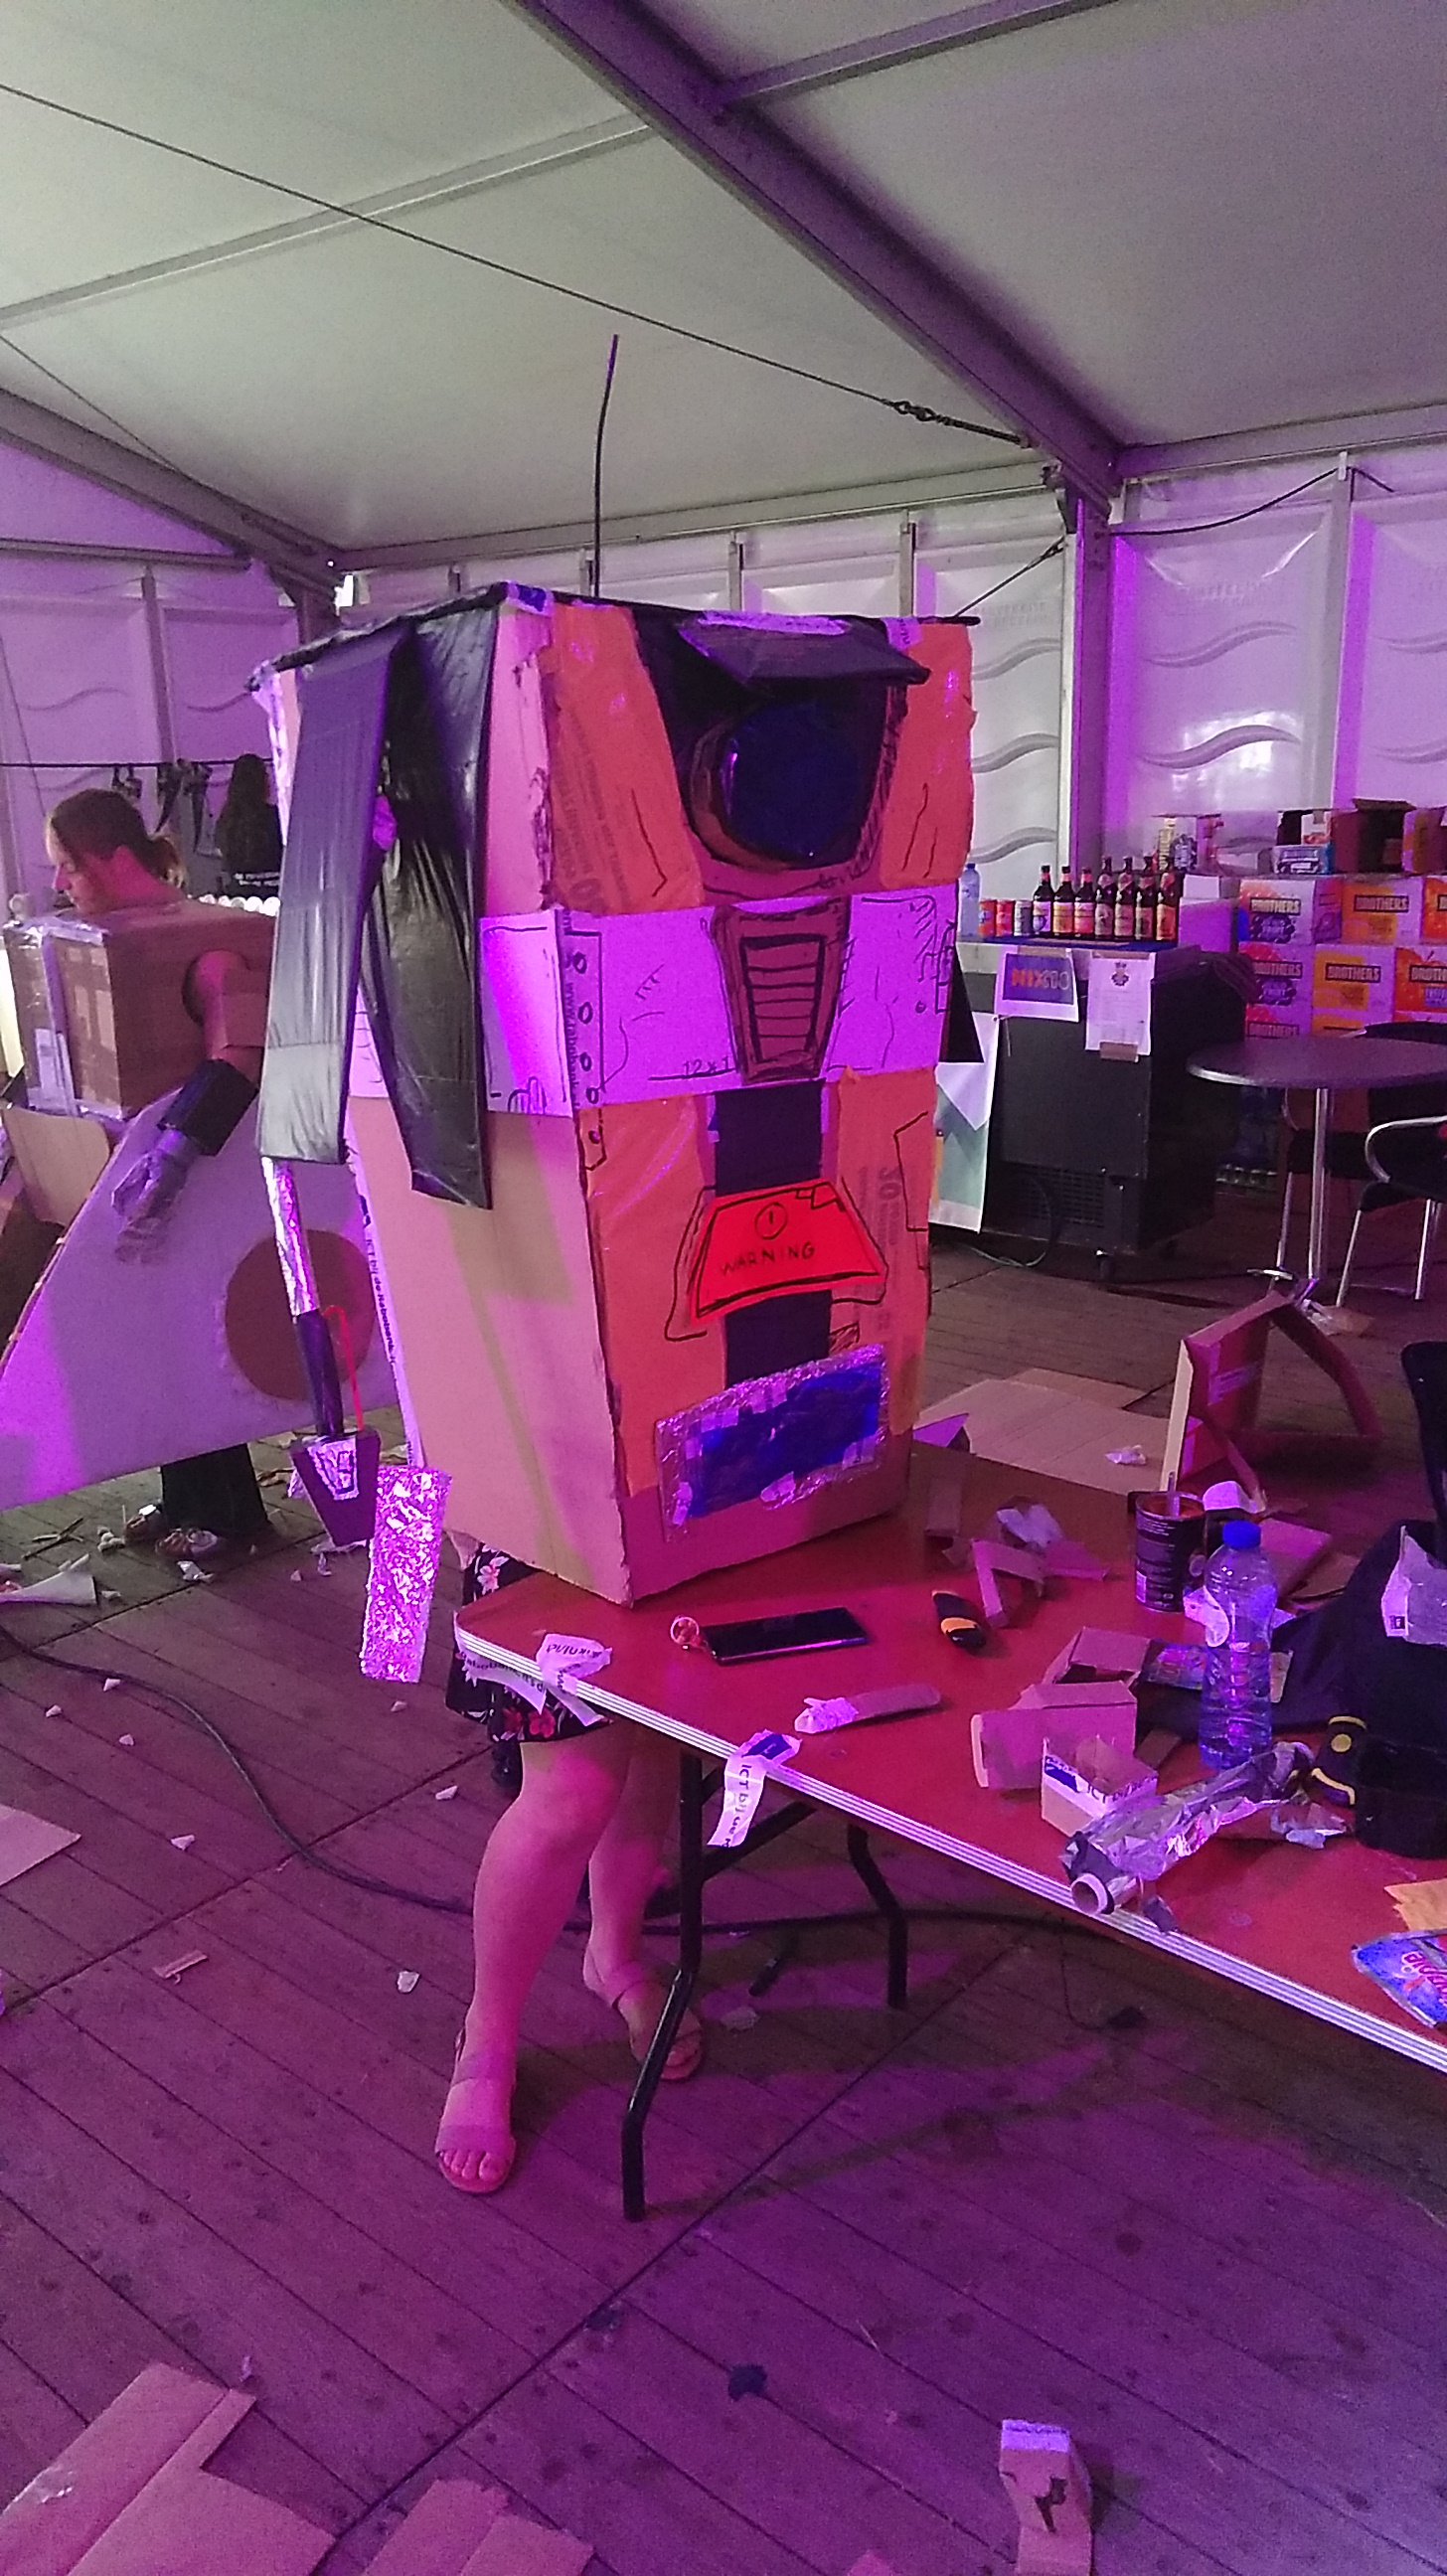 Claptrap op de Low-tech cosplay.